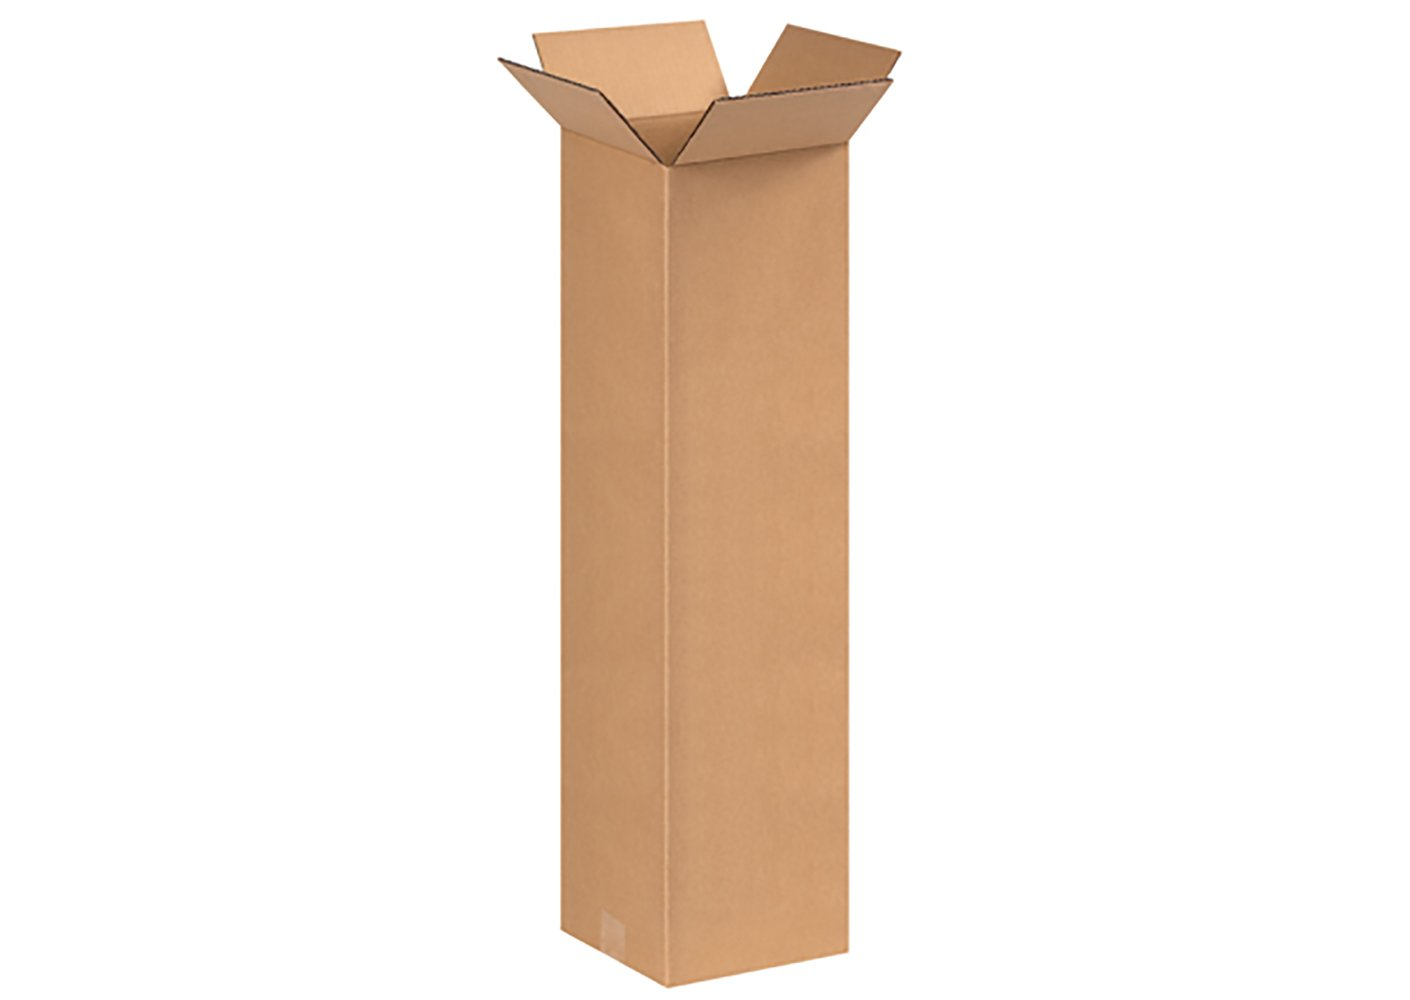 RetailSource B090930CB250 Tall Corrugated Box, 30'' Height, 9'' Width, 9'' Length, Brown (Pack of 250)